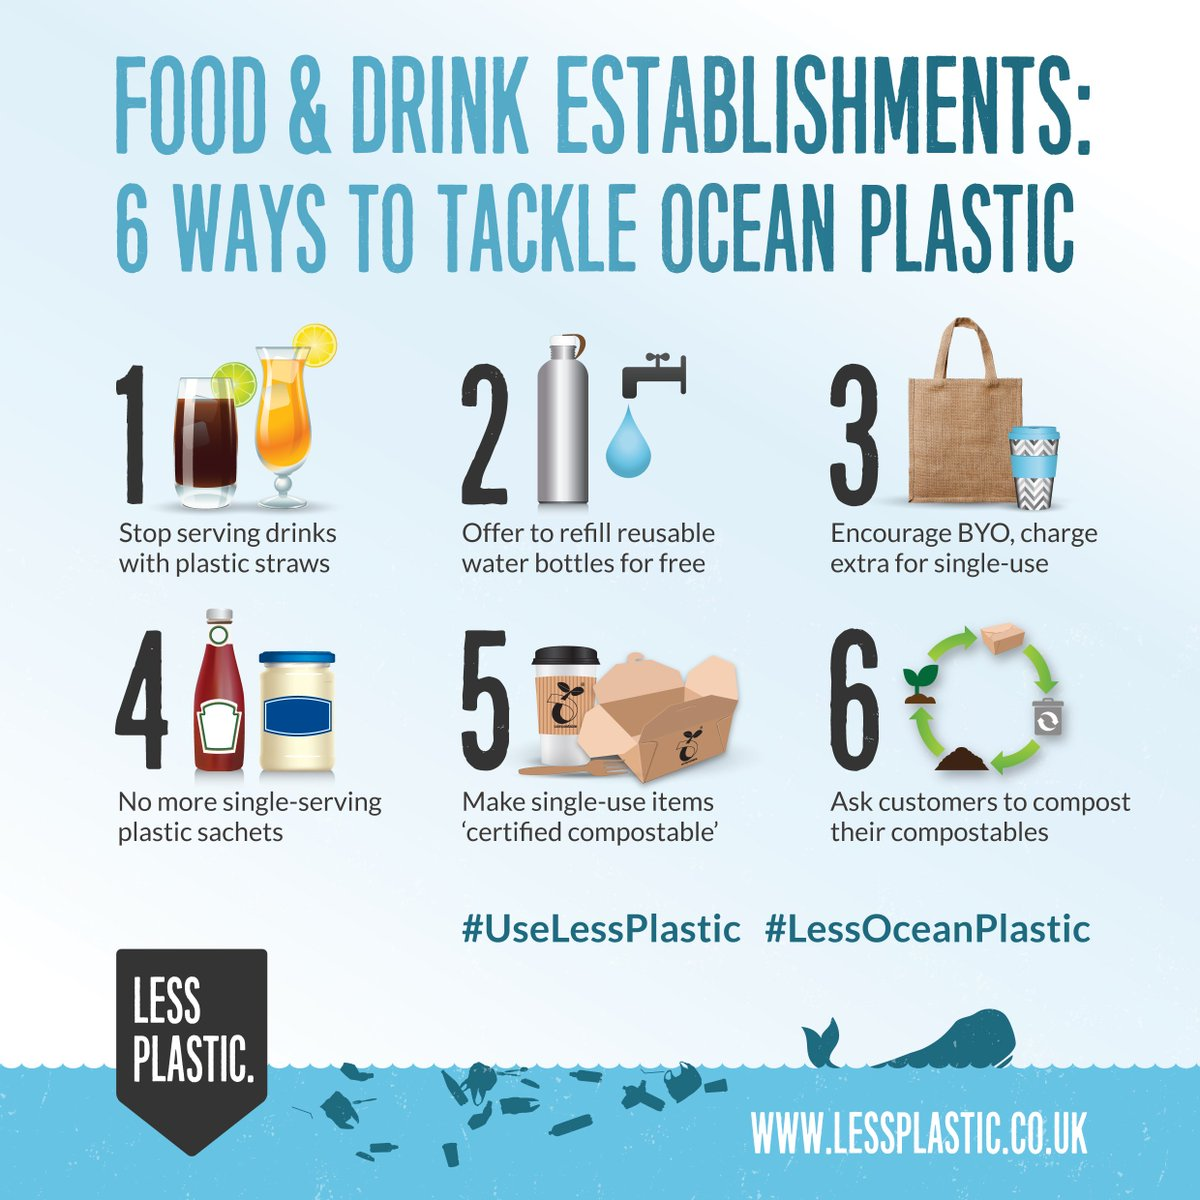 Printastic project printasticpro twitter here are 6 ways you can tackle oceanplastic httpbit2r6xgx3 uselessplastic lessoceanplastic bethechangepicitterzvmkxnknq5 fandeluxe